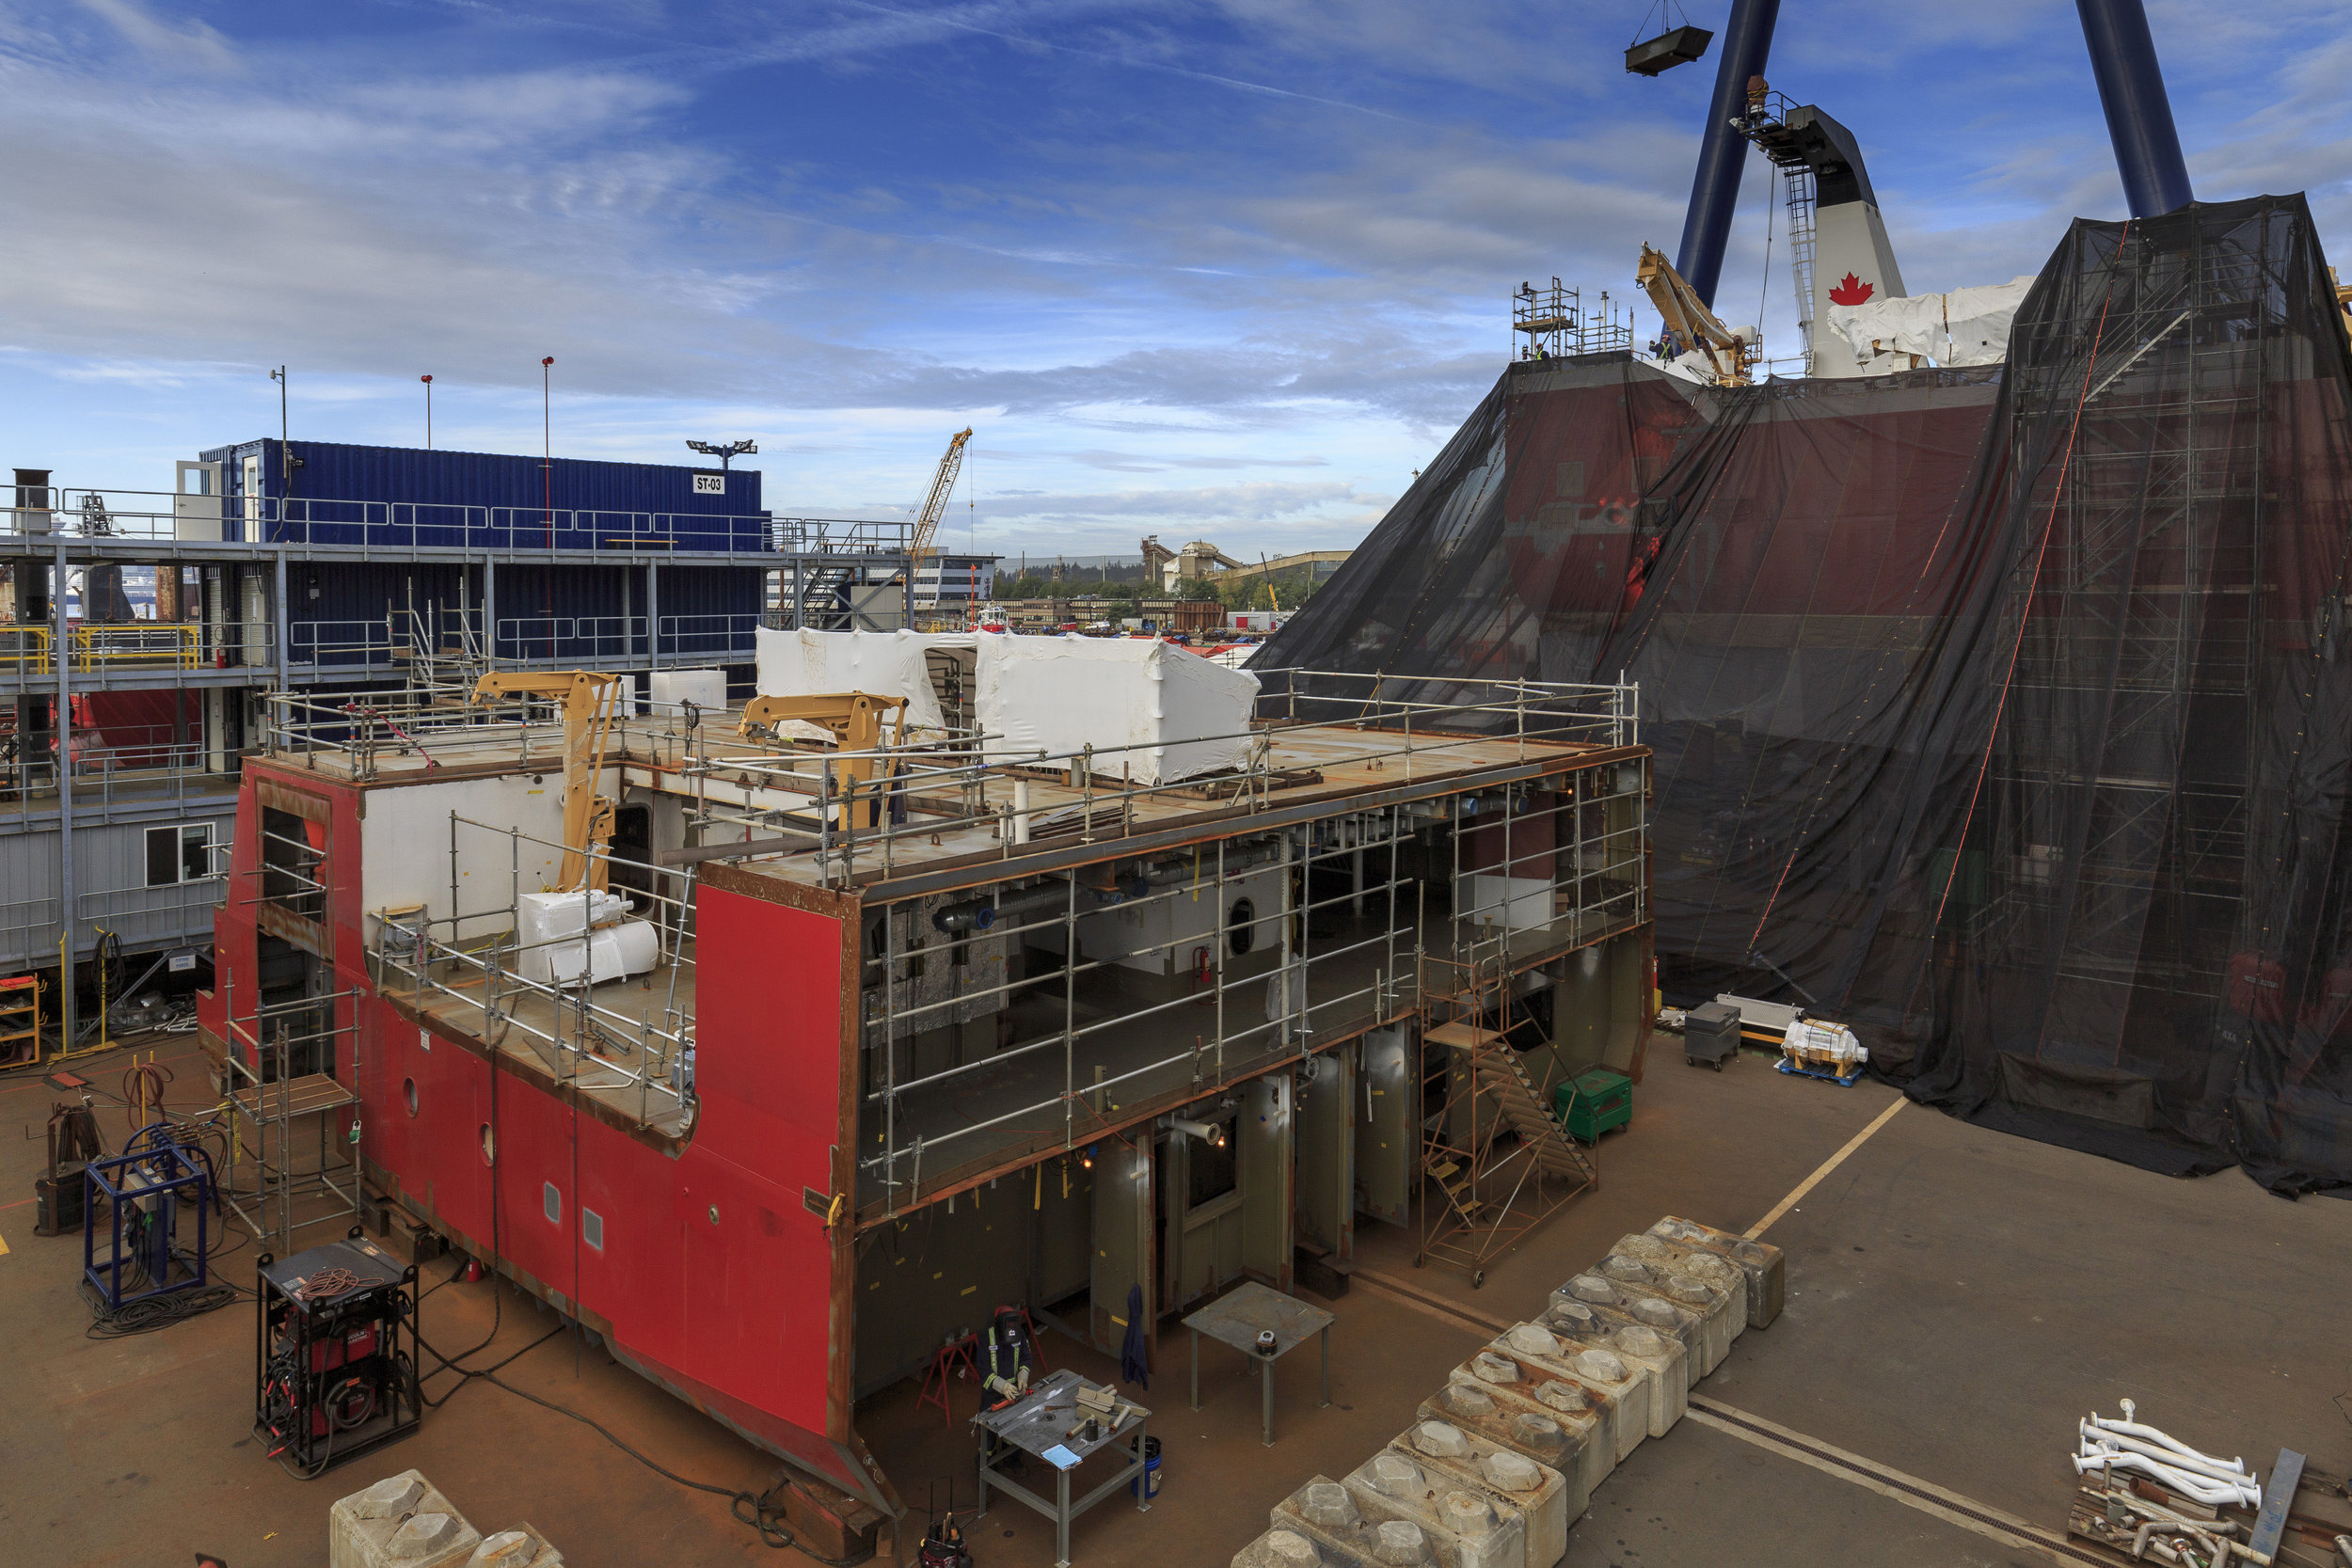 Seaspan Shipyards was awarded the non-combat package under the National Shipbuilding Strategy, which includes three Offshore Fisheries Science Vessels (OFSVs), one Offshore Oceanographic Science Vessel and one Polar Icebreaker for the Canadian Coast Guard and two Joint Support Ships for the Royal Canadian Navy. All three of the CCG's OFSVs are currently under construction at Seaspan, with each at various stages in their modular block construction. The first OFSV to be completed, the Sir John Franklin (behind the screen in the background), is scheduled for launch in December 2017.